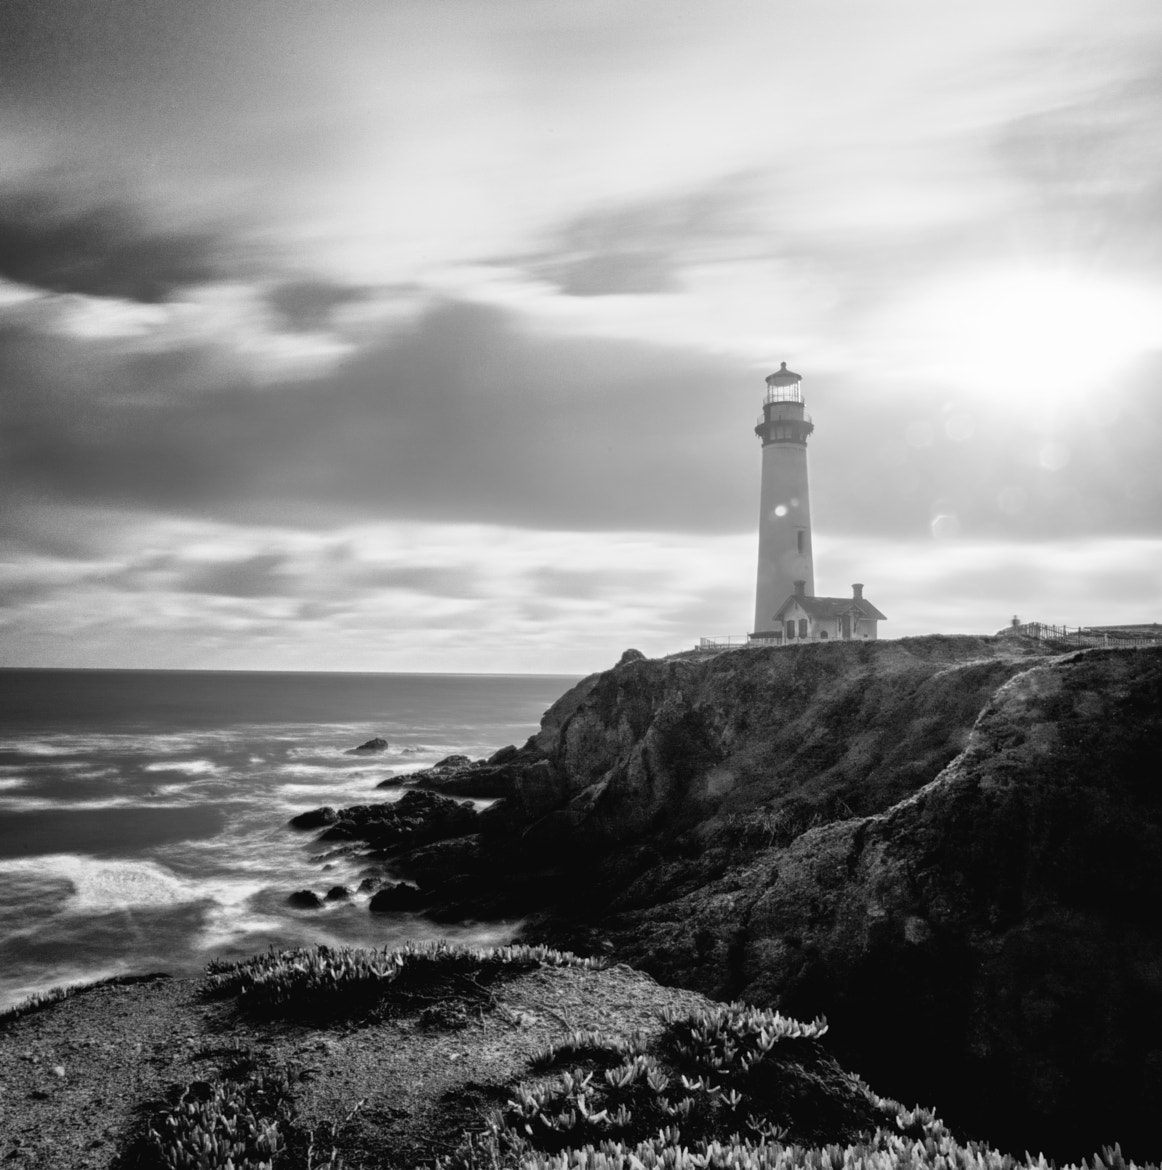 Photograph lighthouse by Prithvi Poosapati on 500px